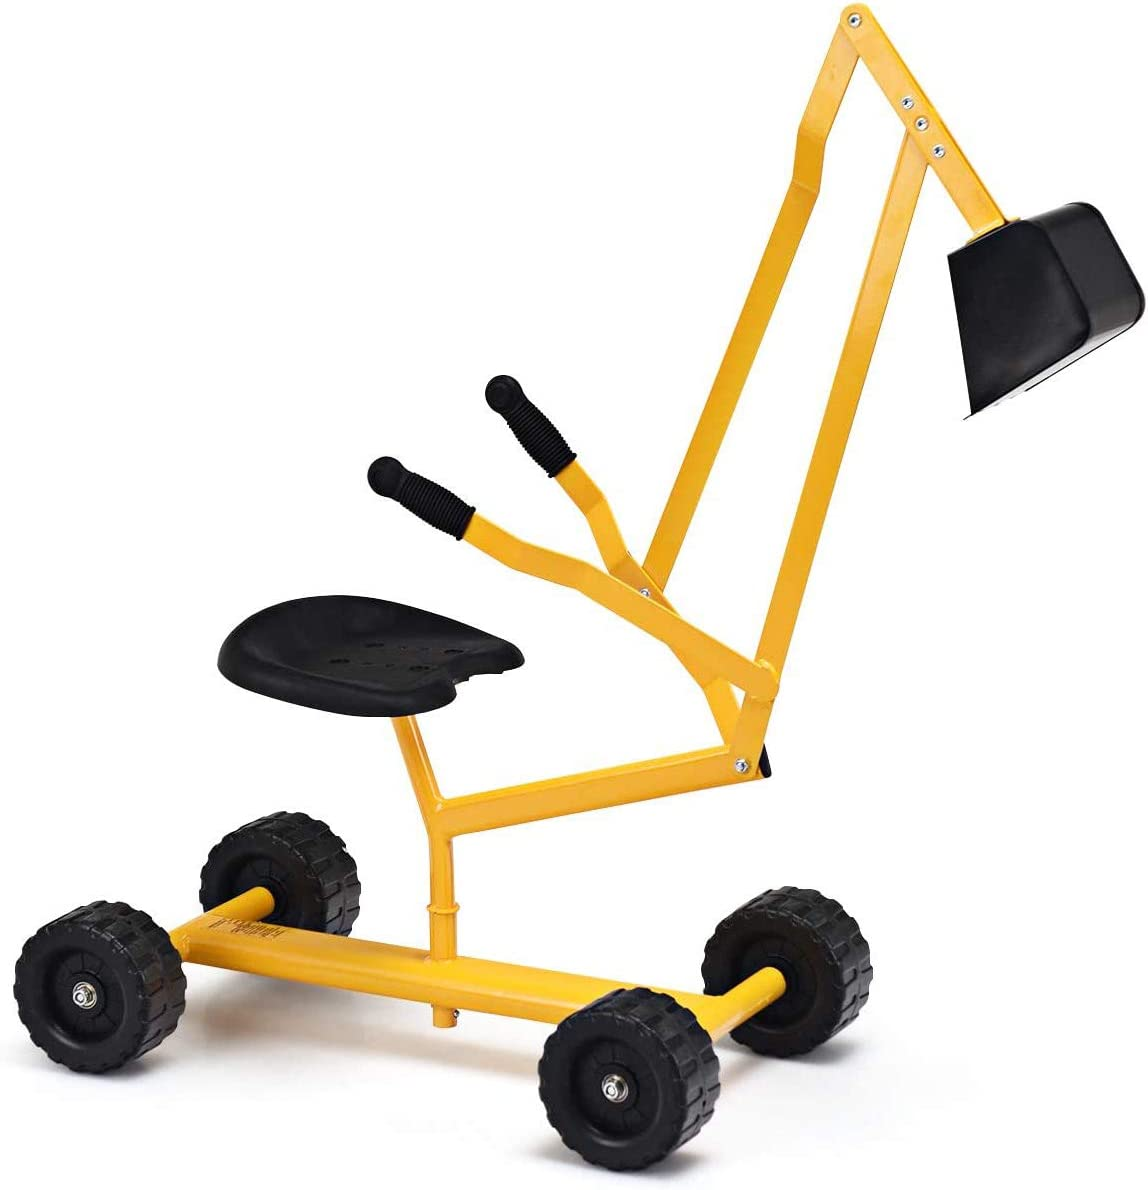 GLACER Kids Albuquerque Mall Los Angeles Mall Sand Digger with Wheels Excavator Sandbox Cr